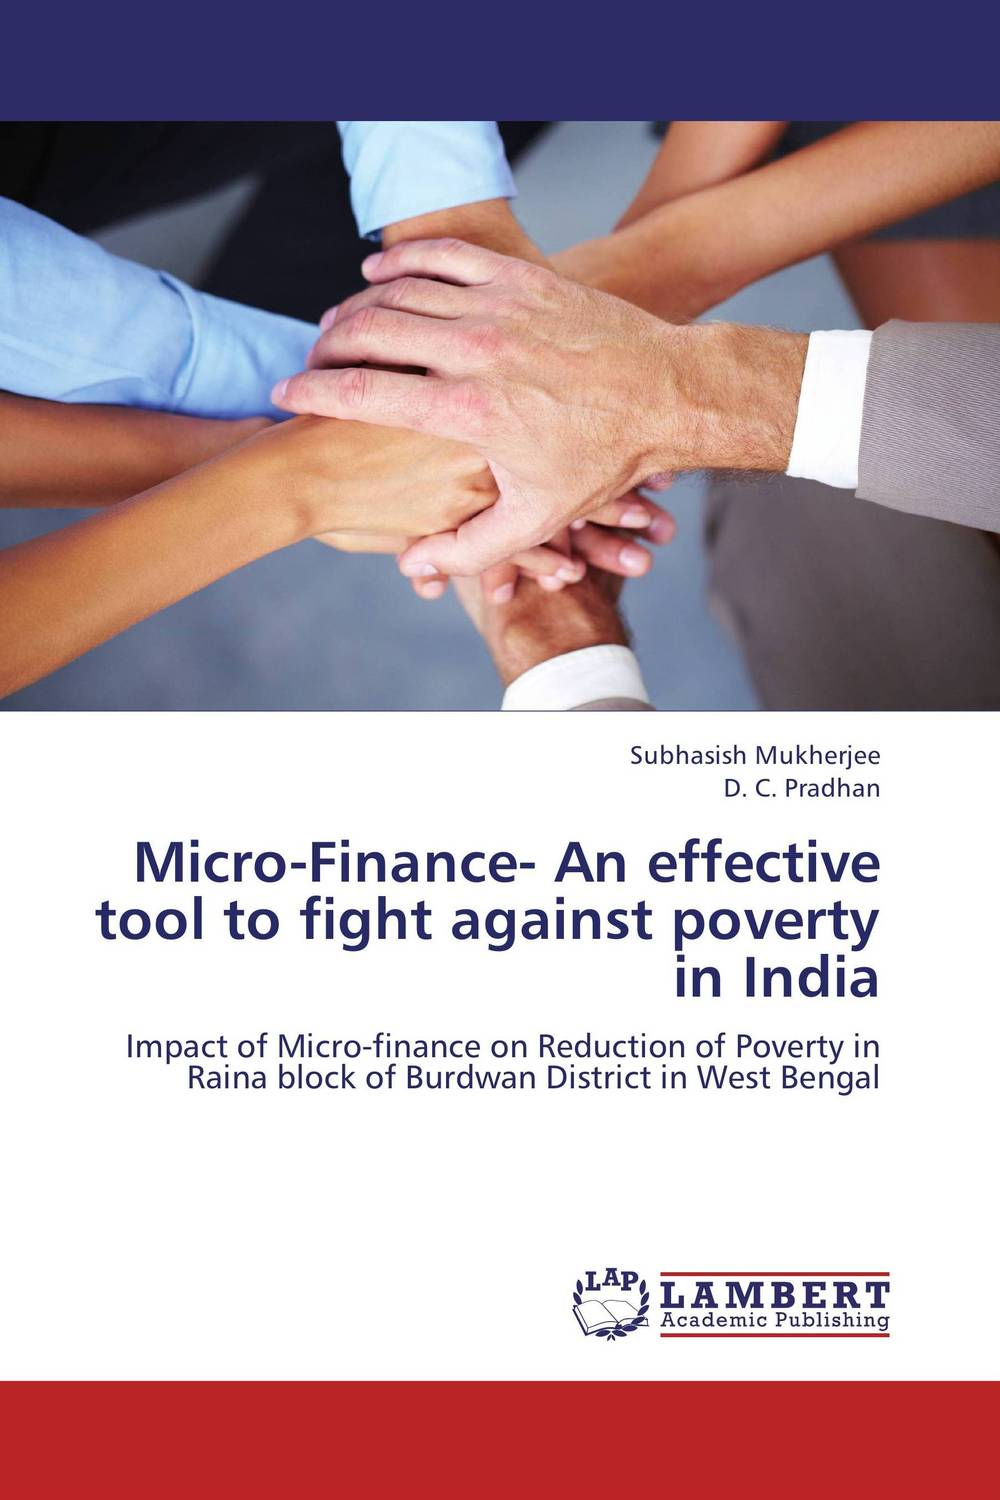 Micro-Finance- An effective tool to fight against poverty in India micro finance in india